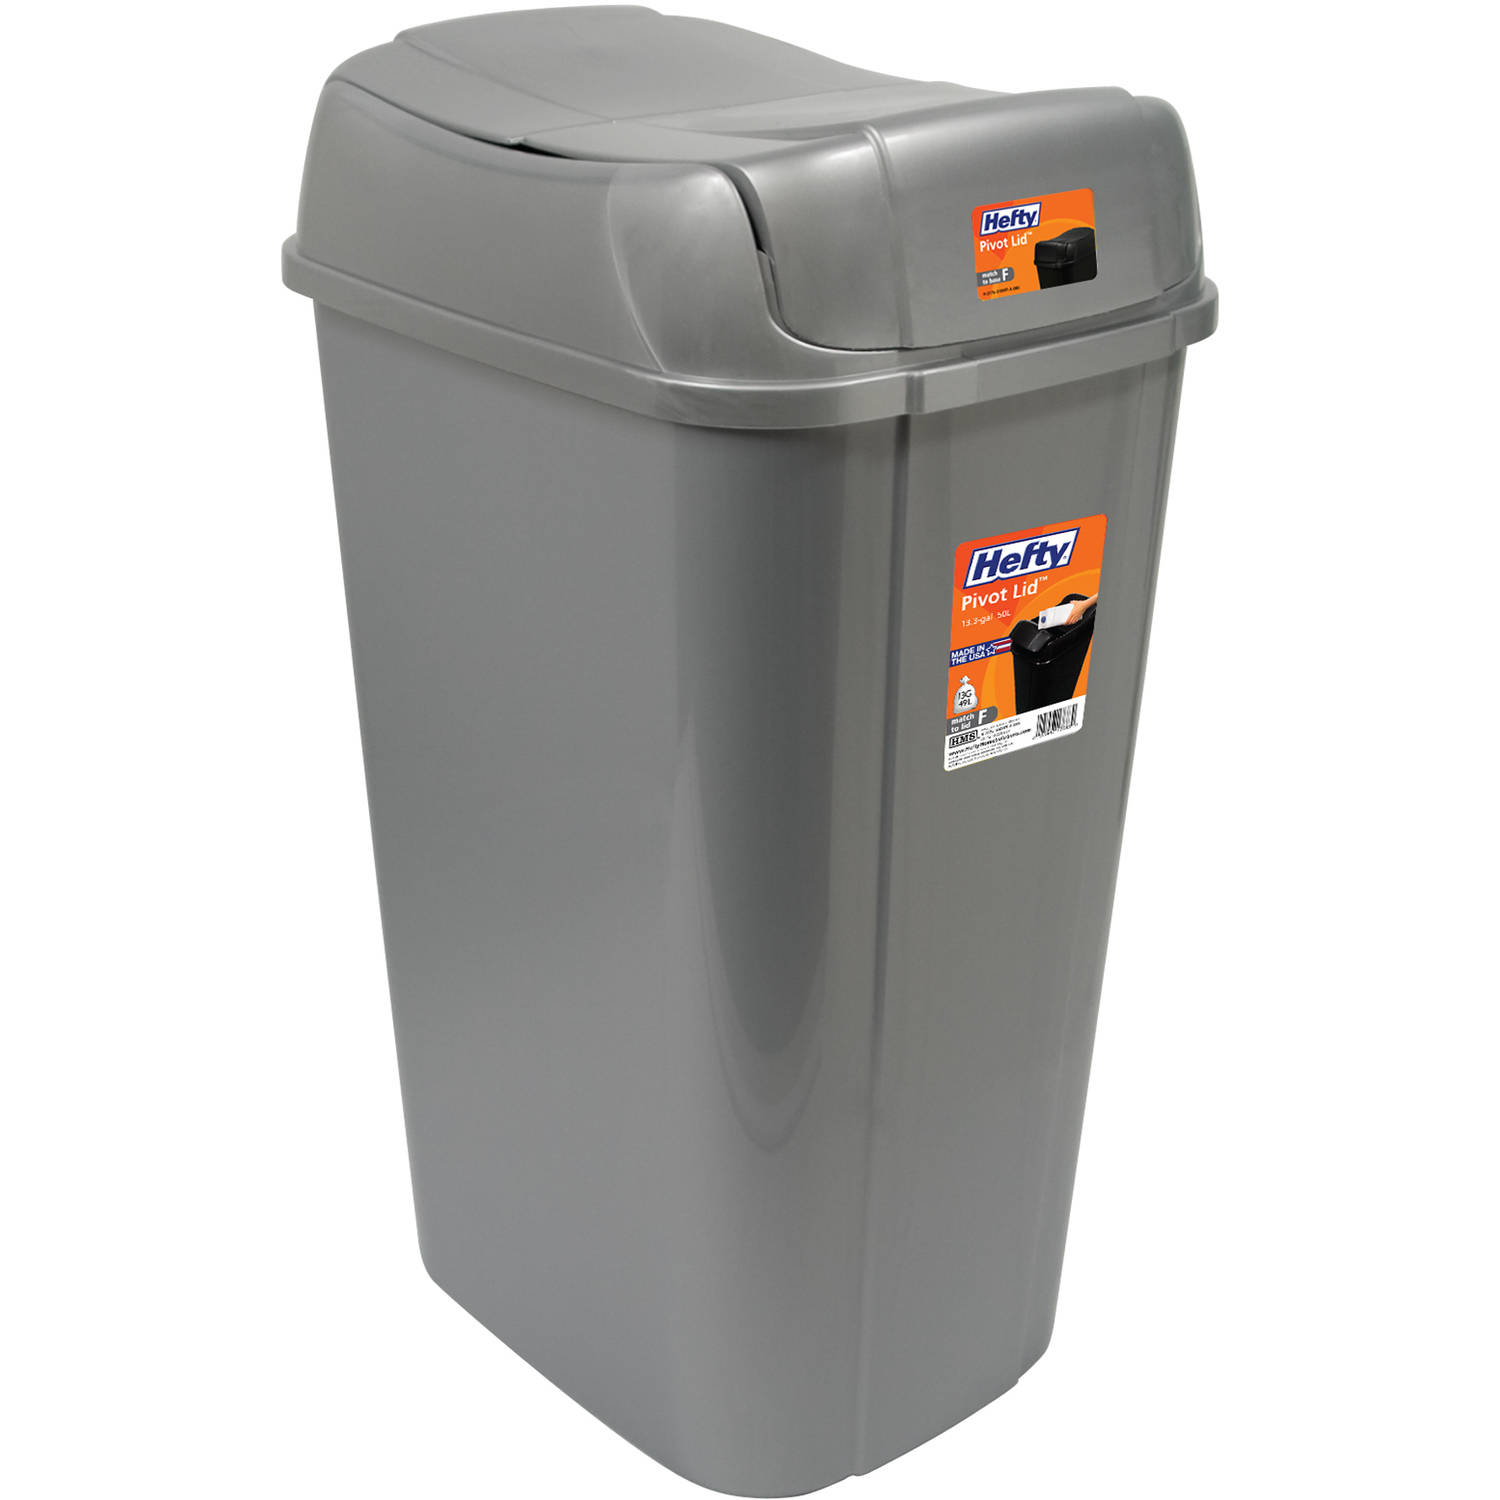 Hefty Pivot-Lid 13.3-Gallon Trash Can, Silver by HMS